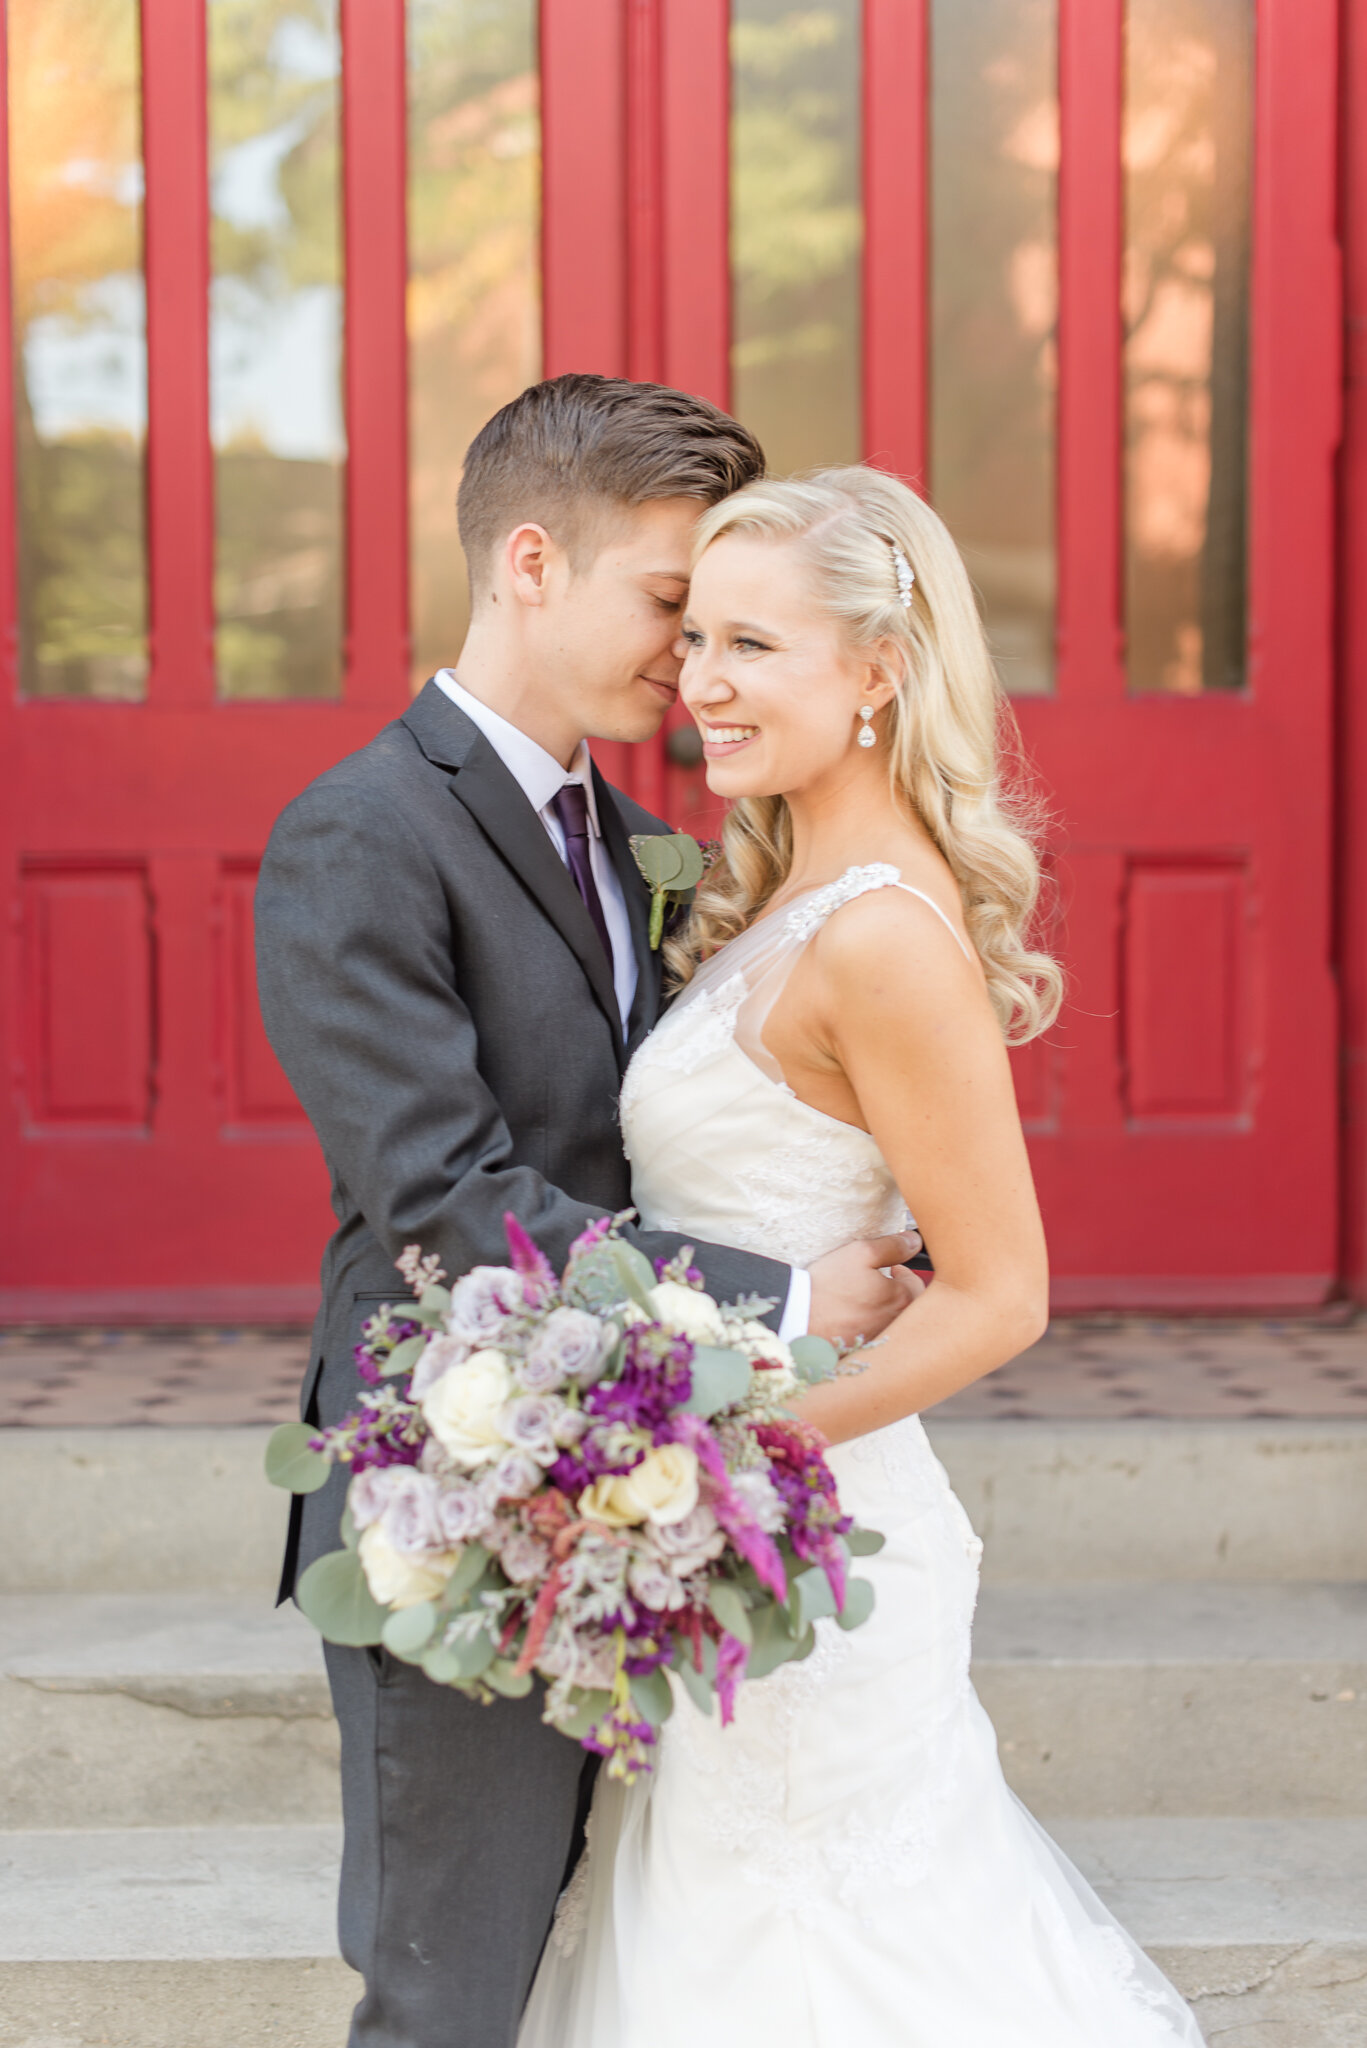 Downtown Indianapolis Wedding at Cyrus Place7507.jpg